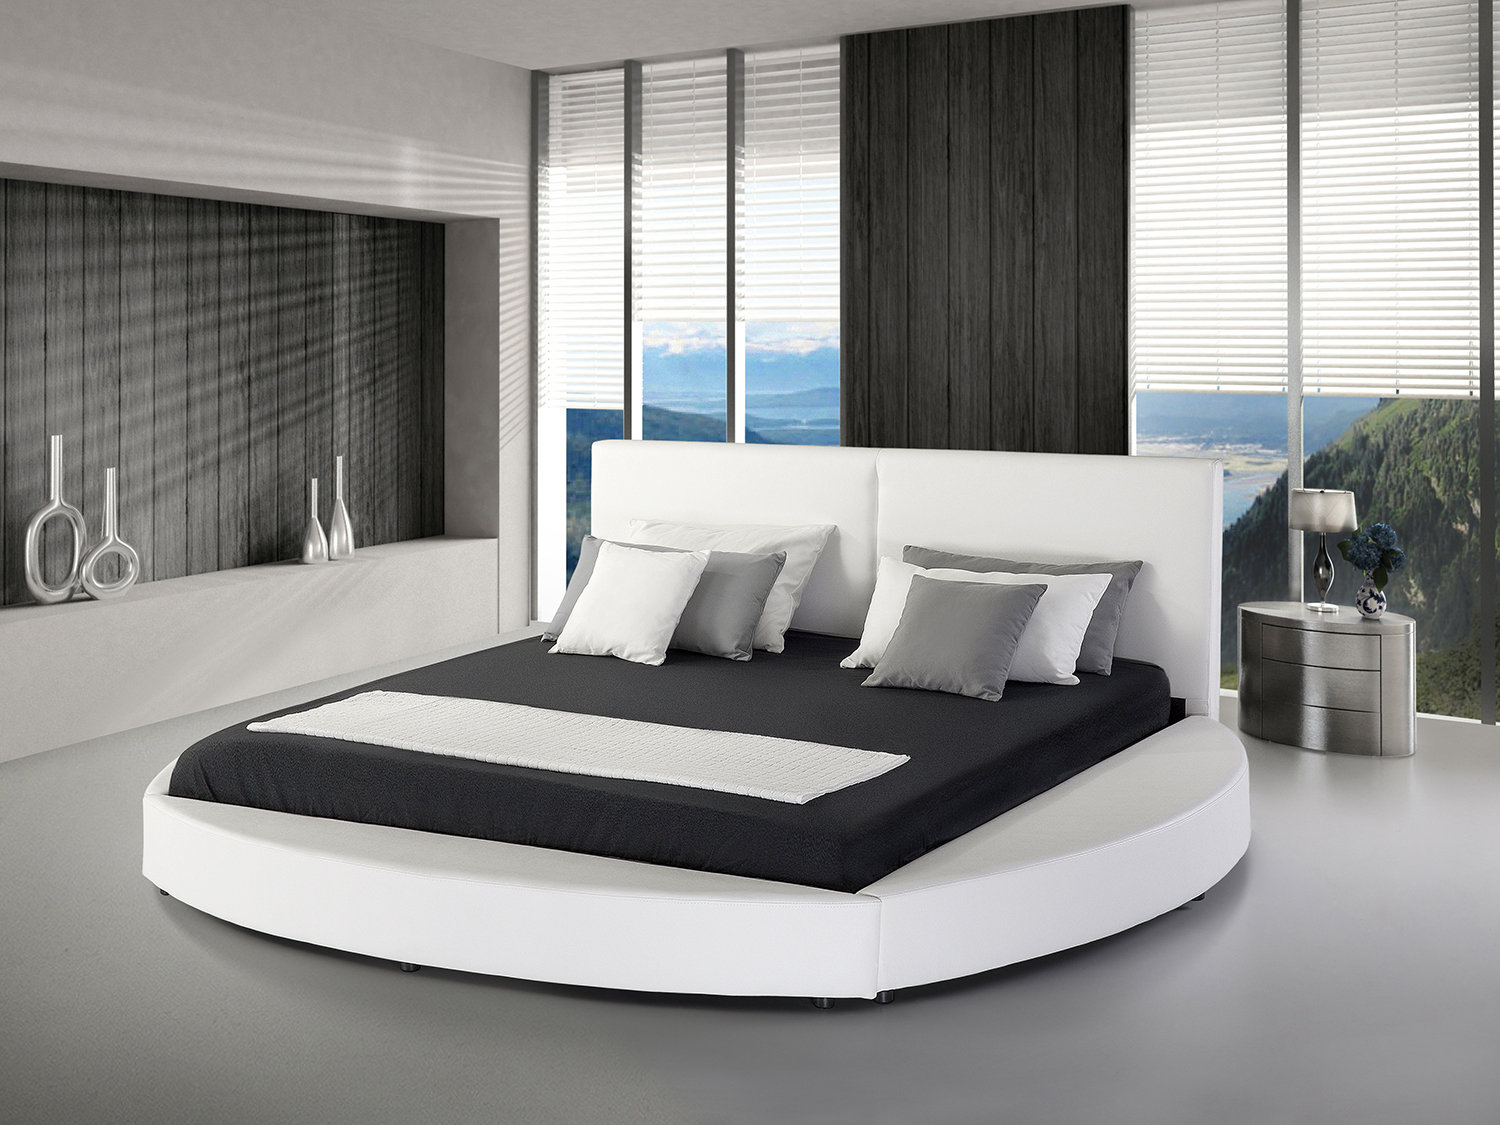 bed super king size bed frame 180x200 cm leather round. Black Bedroom Furniture Sets. Home Design Ideas